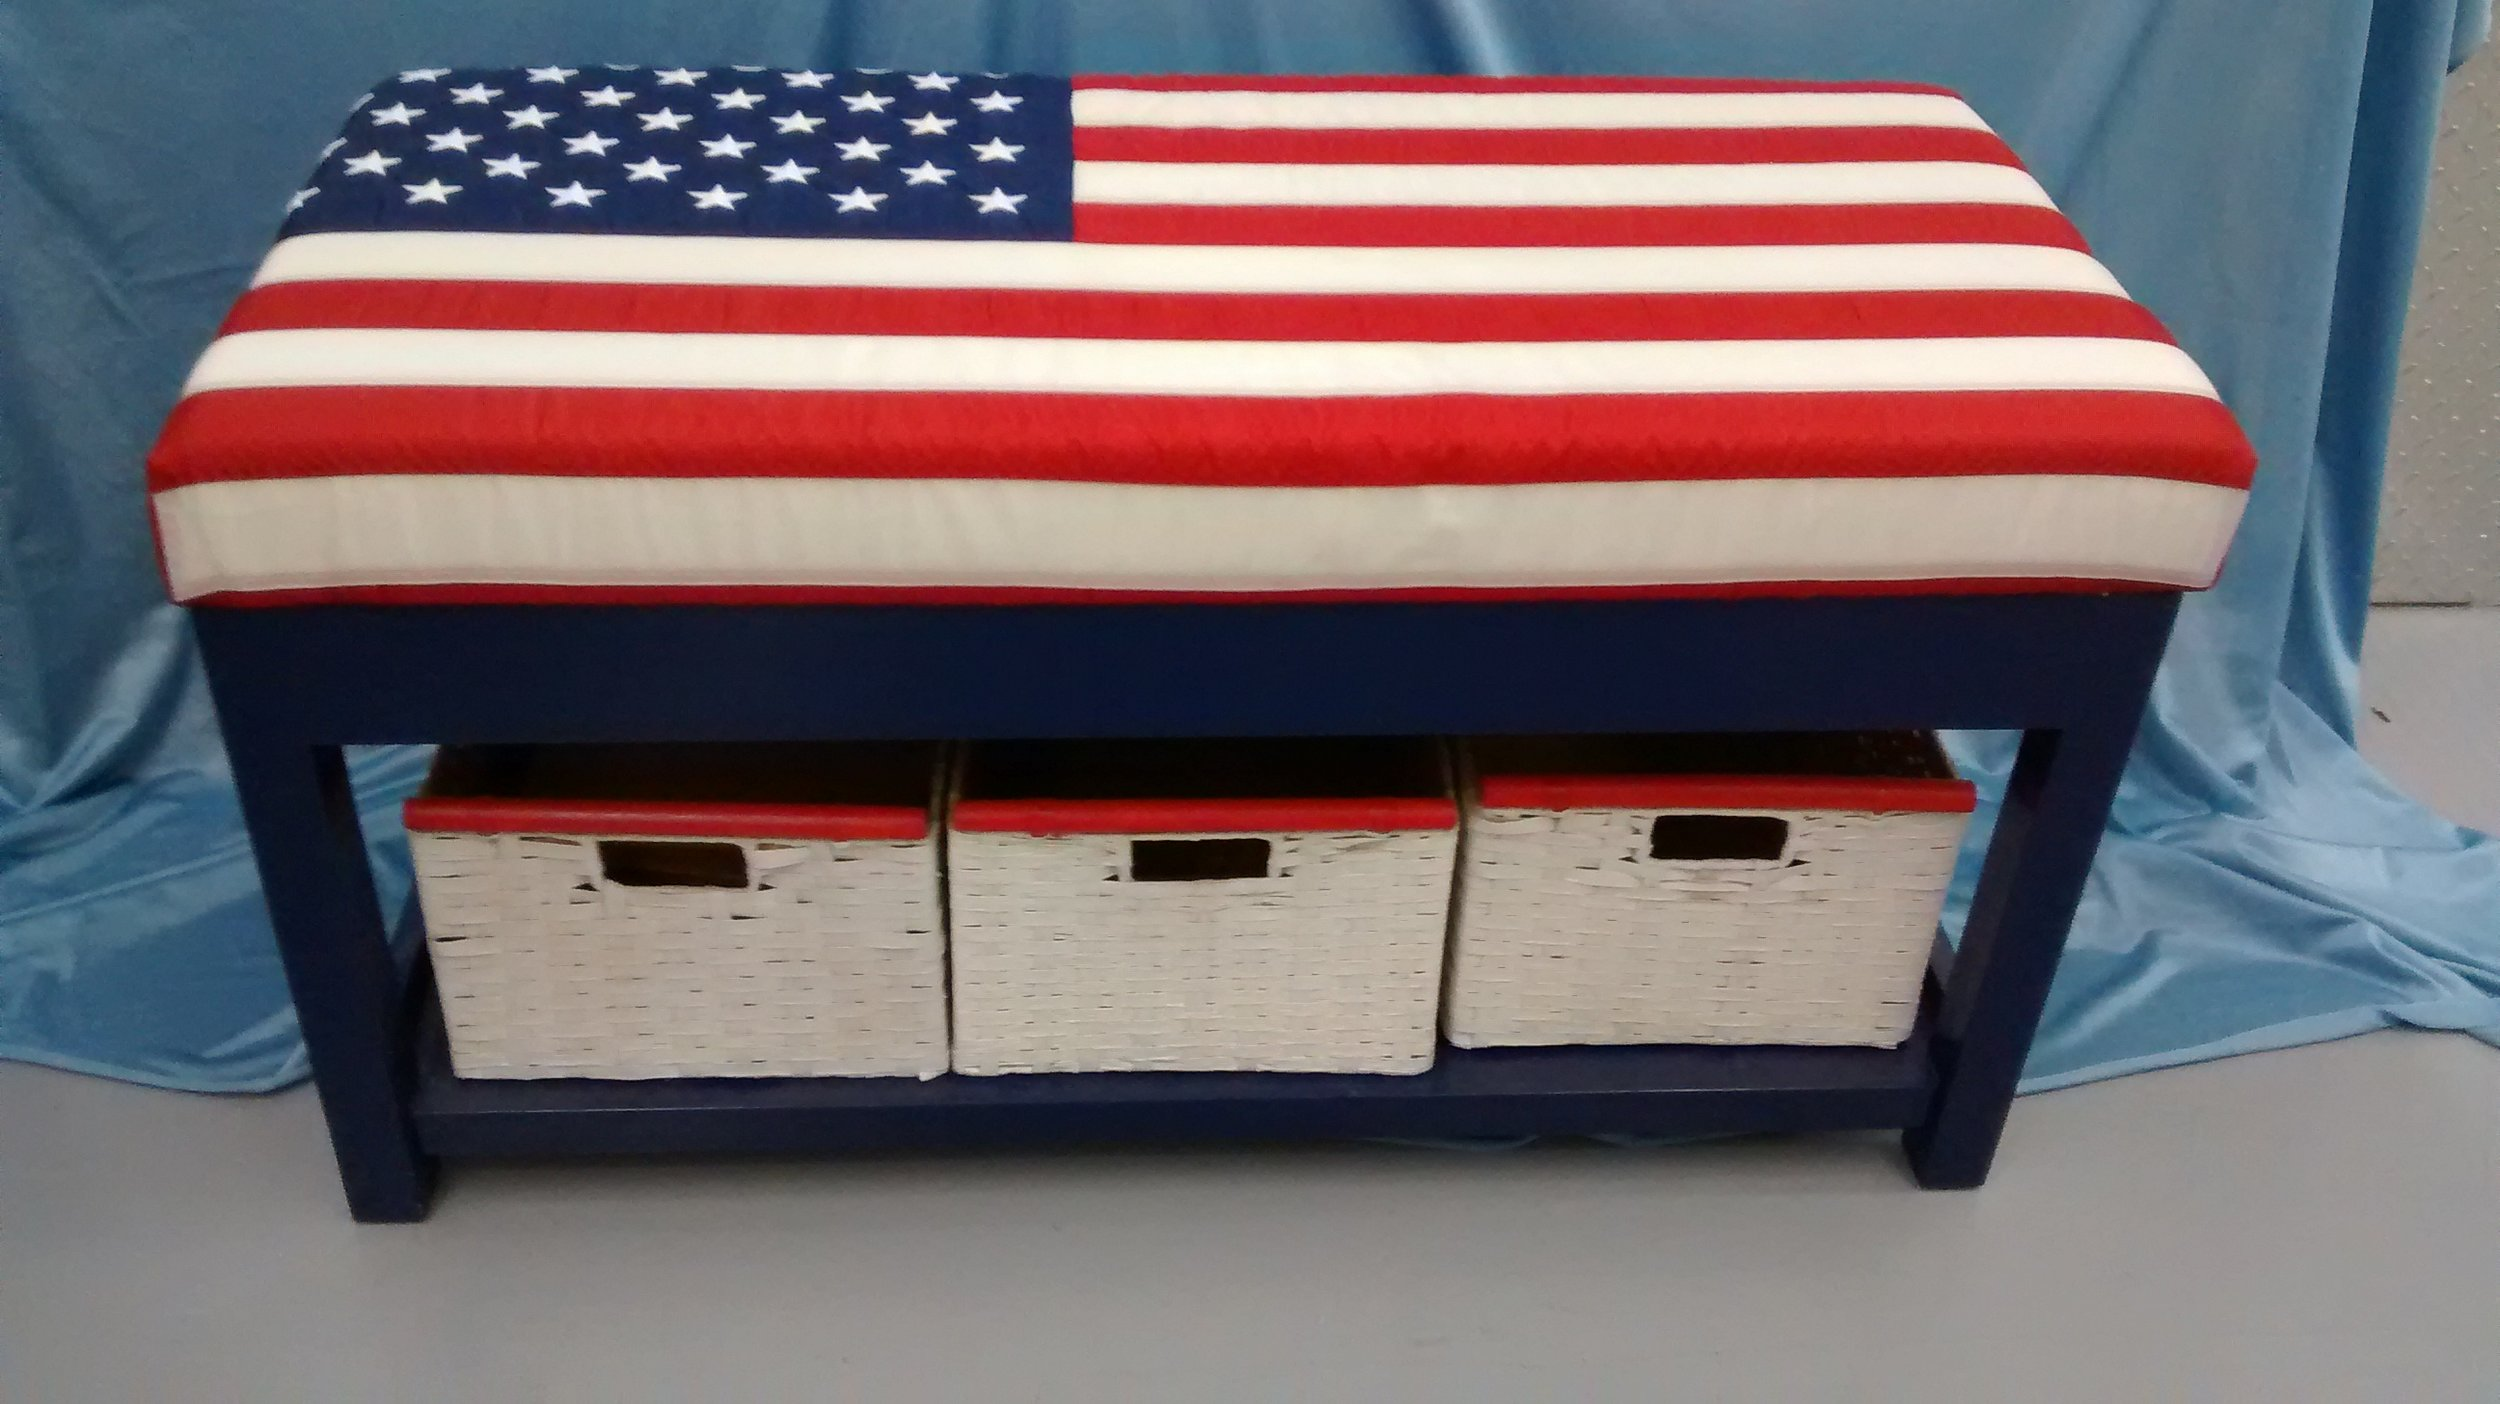 Patriotic Cushioned Bench with Shelf and Storage Baskets